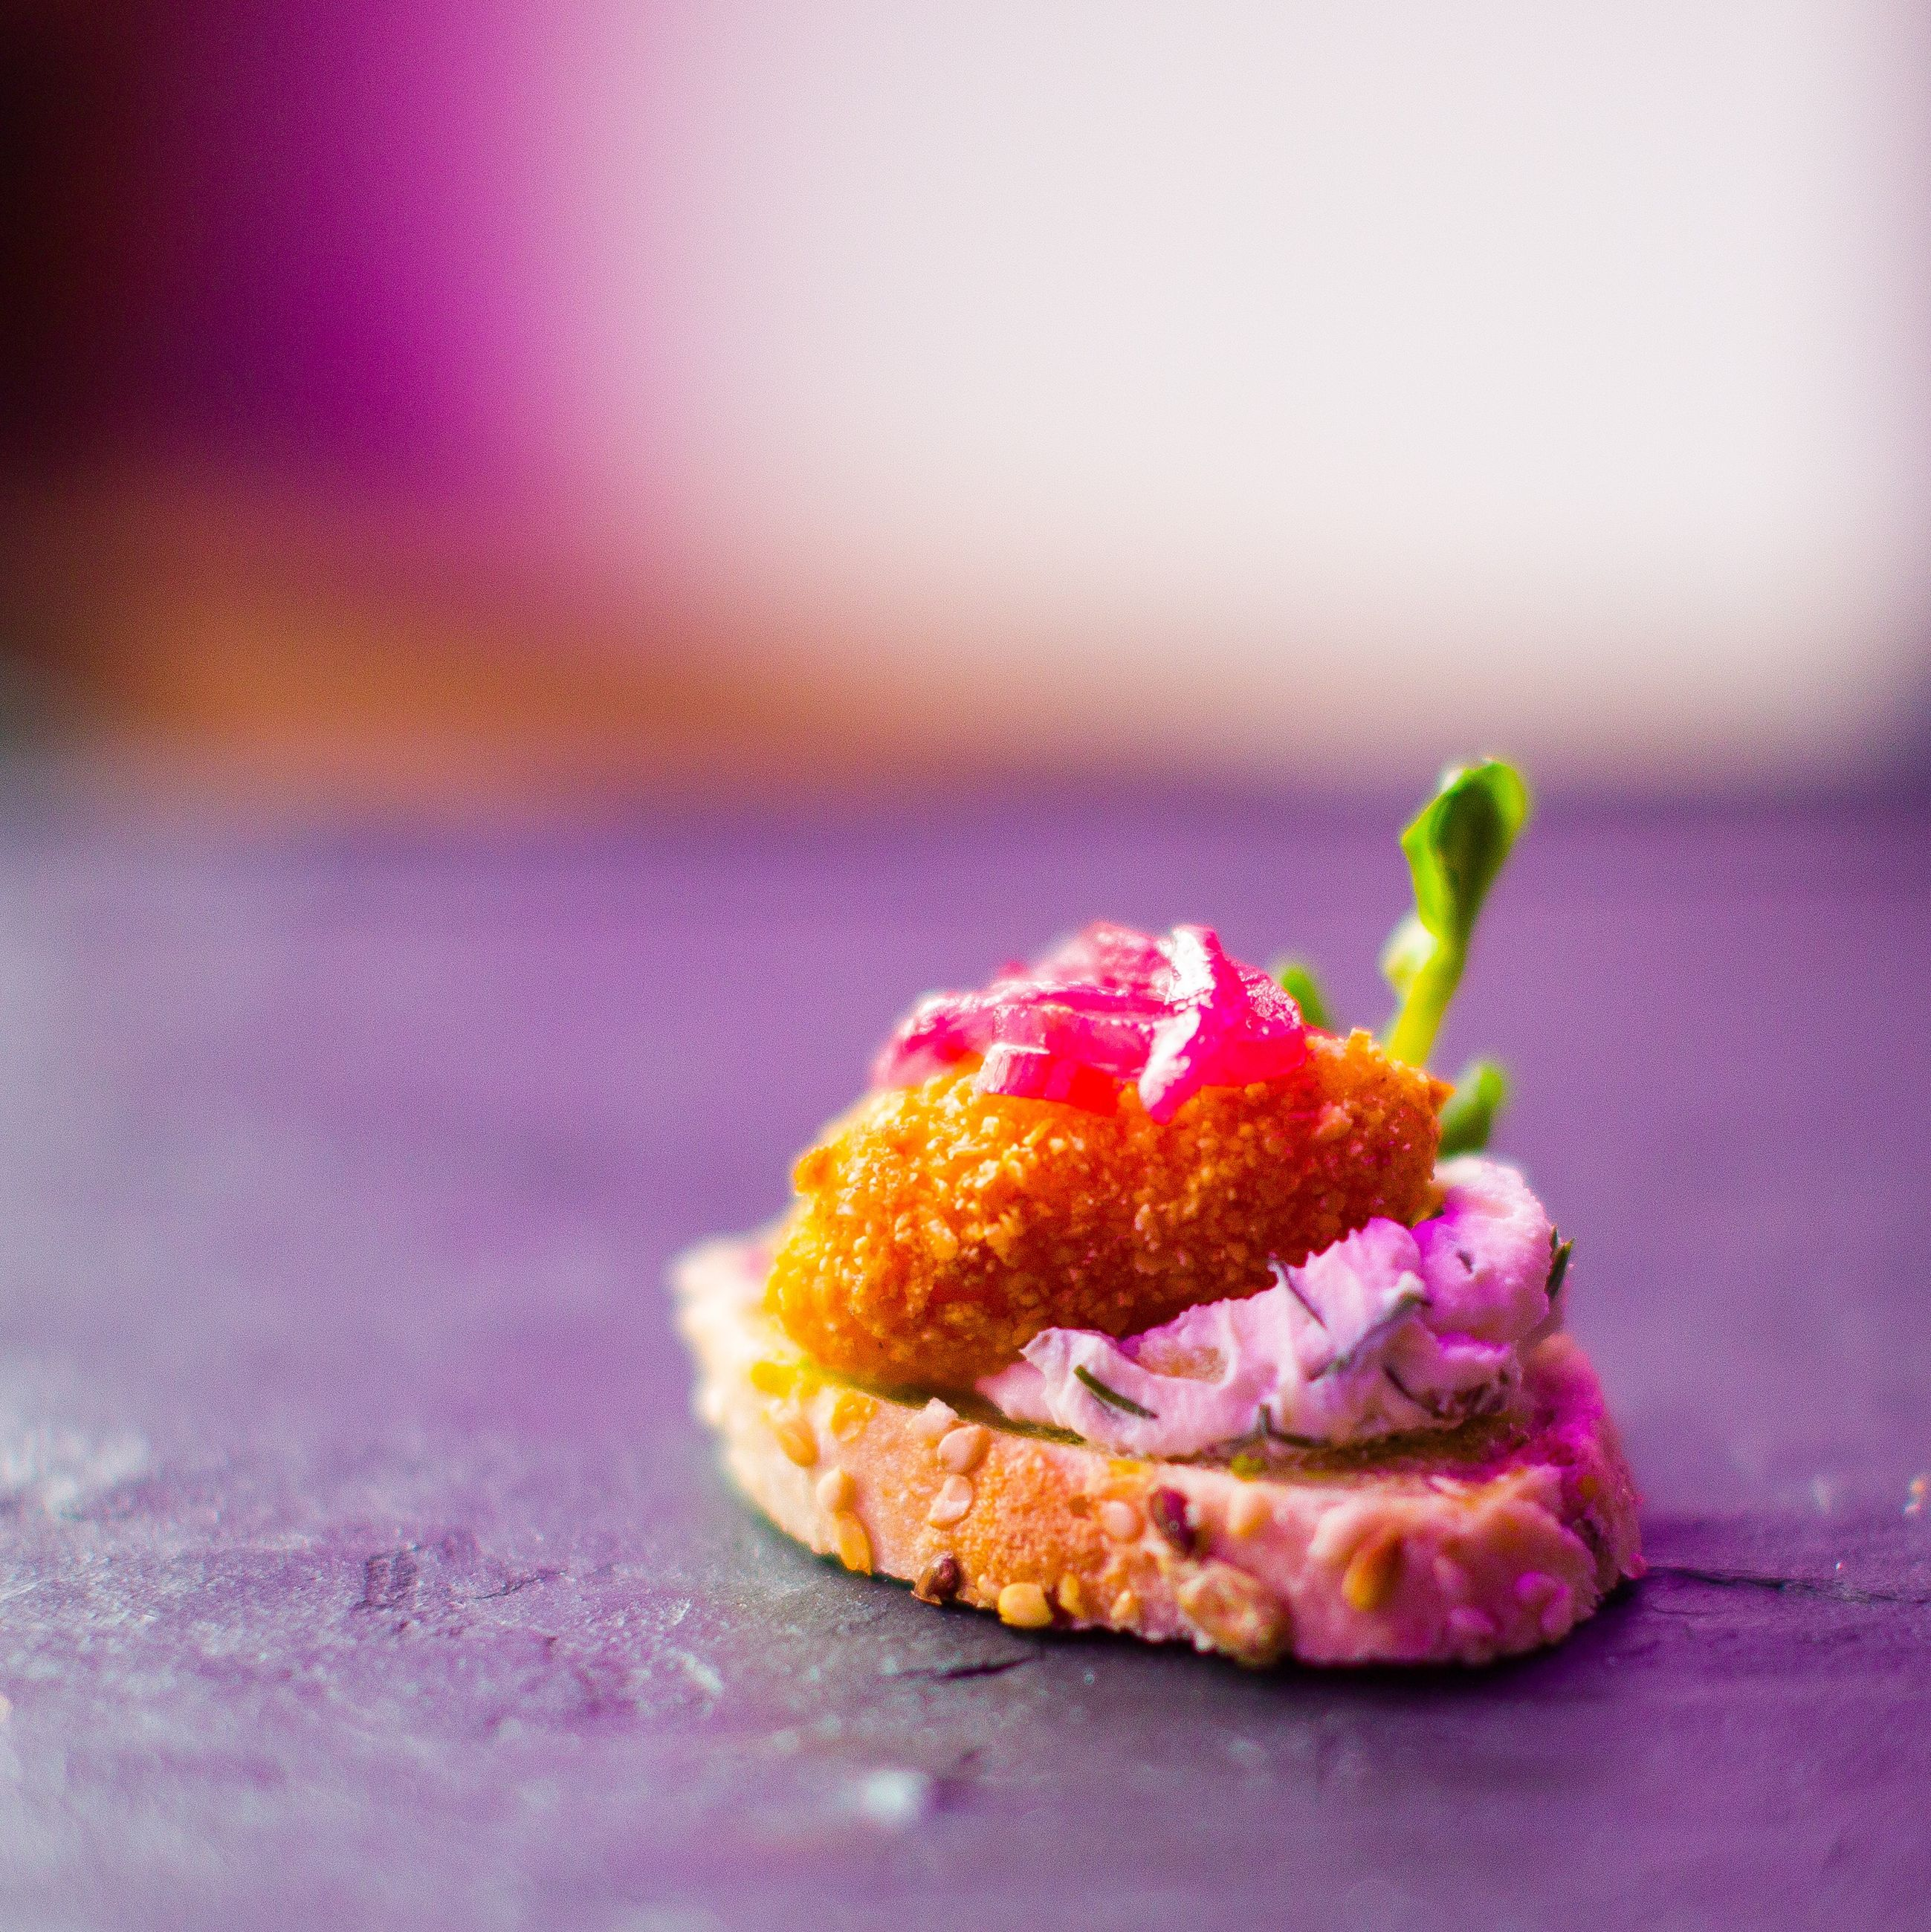 food and drink, food, freshness, still life, close-up, ready-to-eat, sweet food, dessert, selective focus, indulgence, no people, sweet, unhealthy eating, temptation, indoors, table, pink color, cake, plate, baked, snack